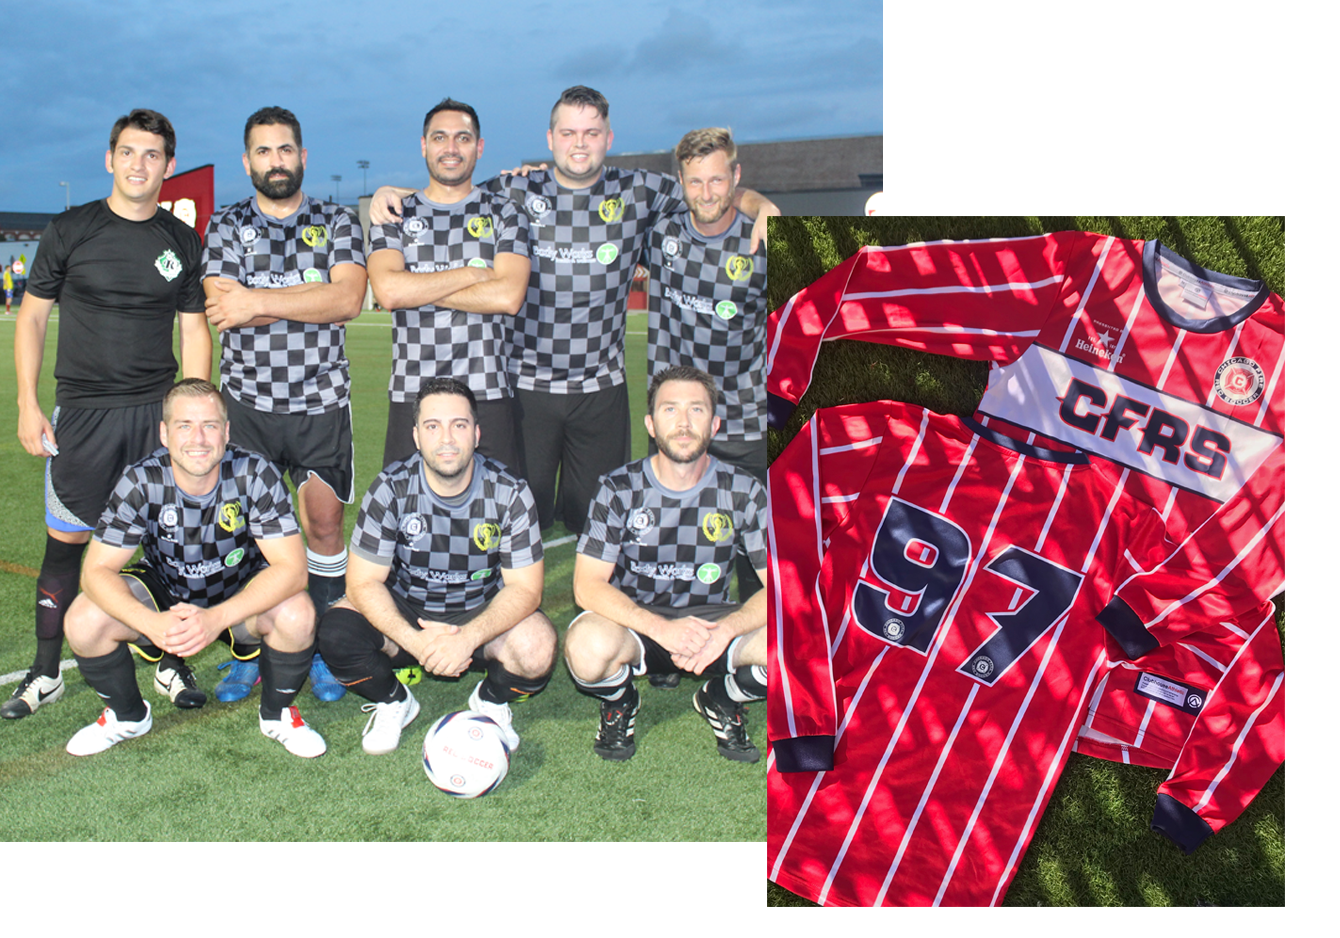 Chicago Fire Rec Soccer - Largest adult recreation soccer provider in the Midwest hosts thousands of soccer players a year and wanted to help provide custom uniforms for the passionate teams. So, we teamed up and got their players outfitted in professional style jerseys.